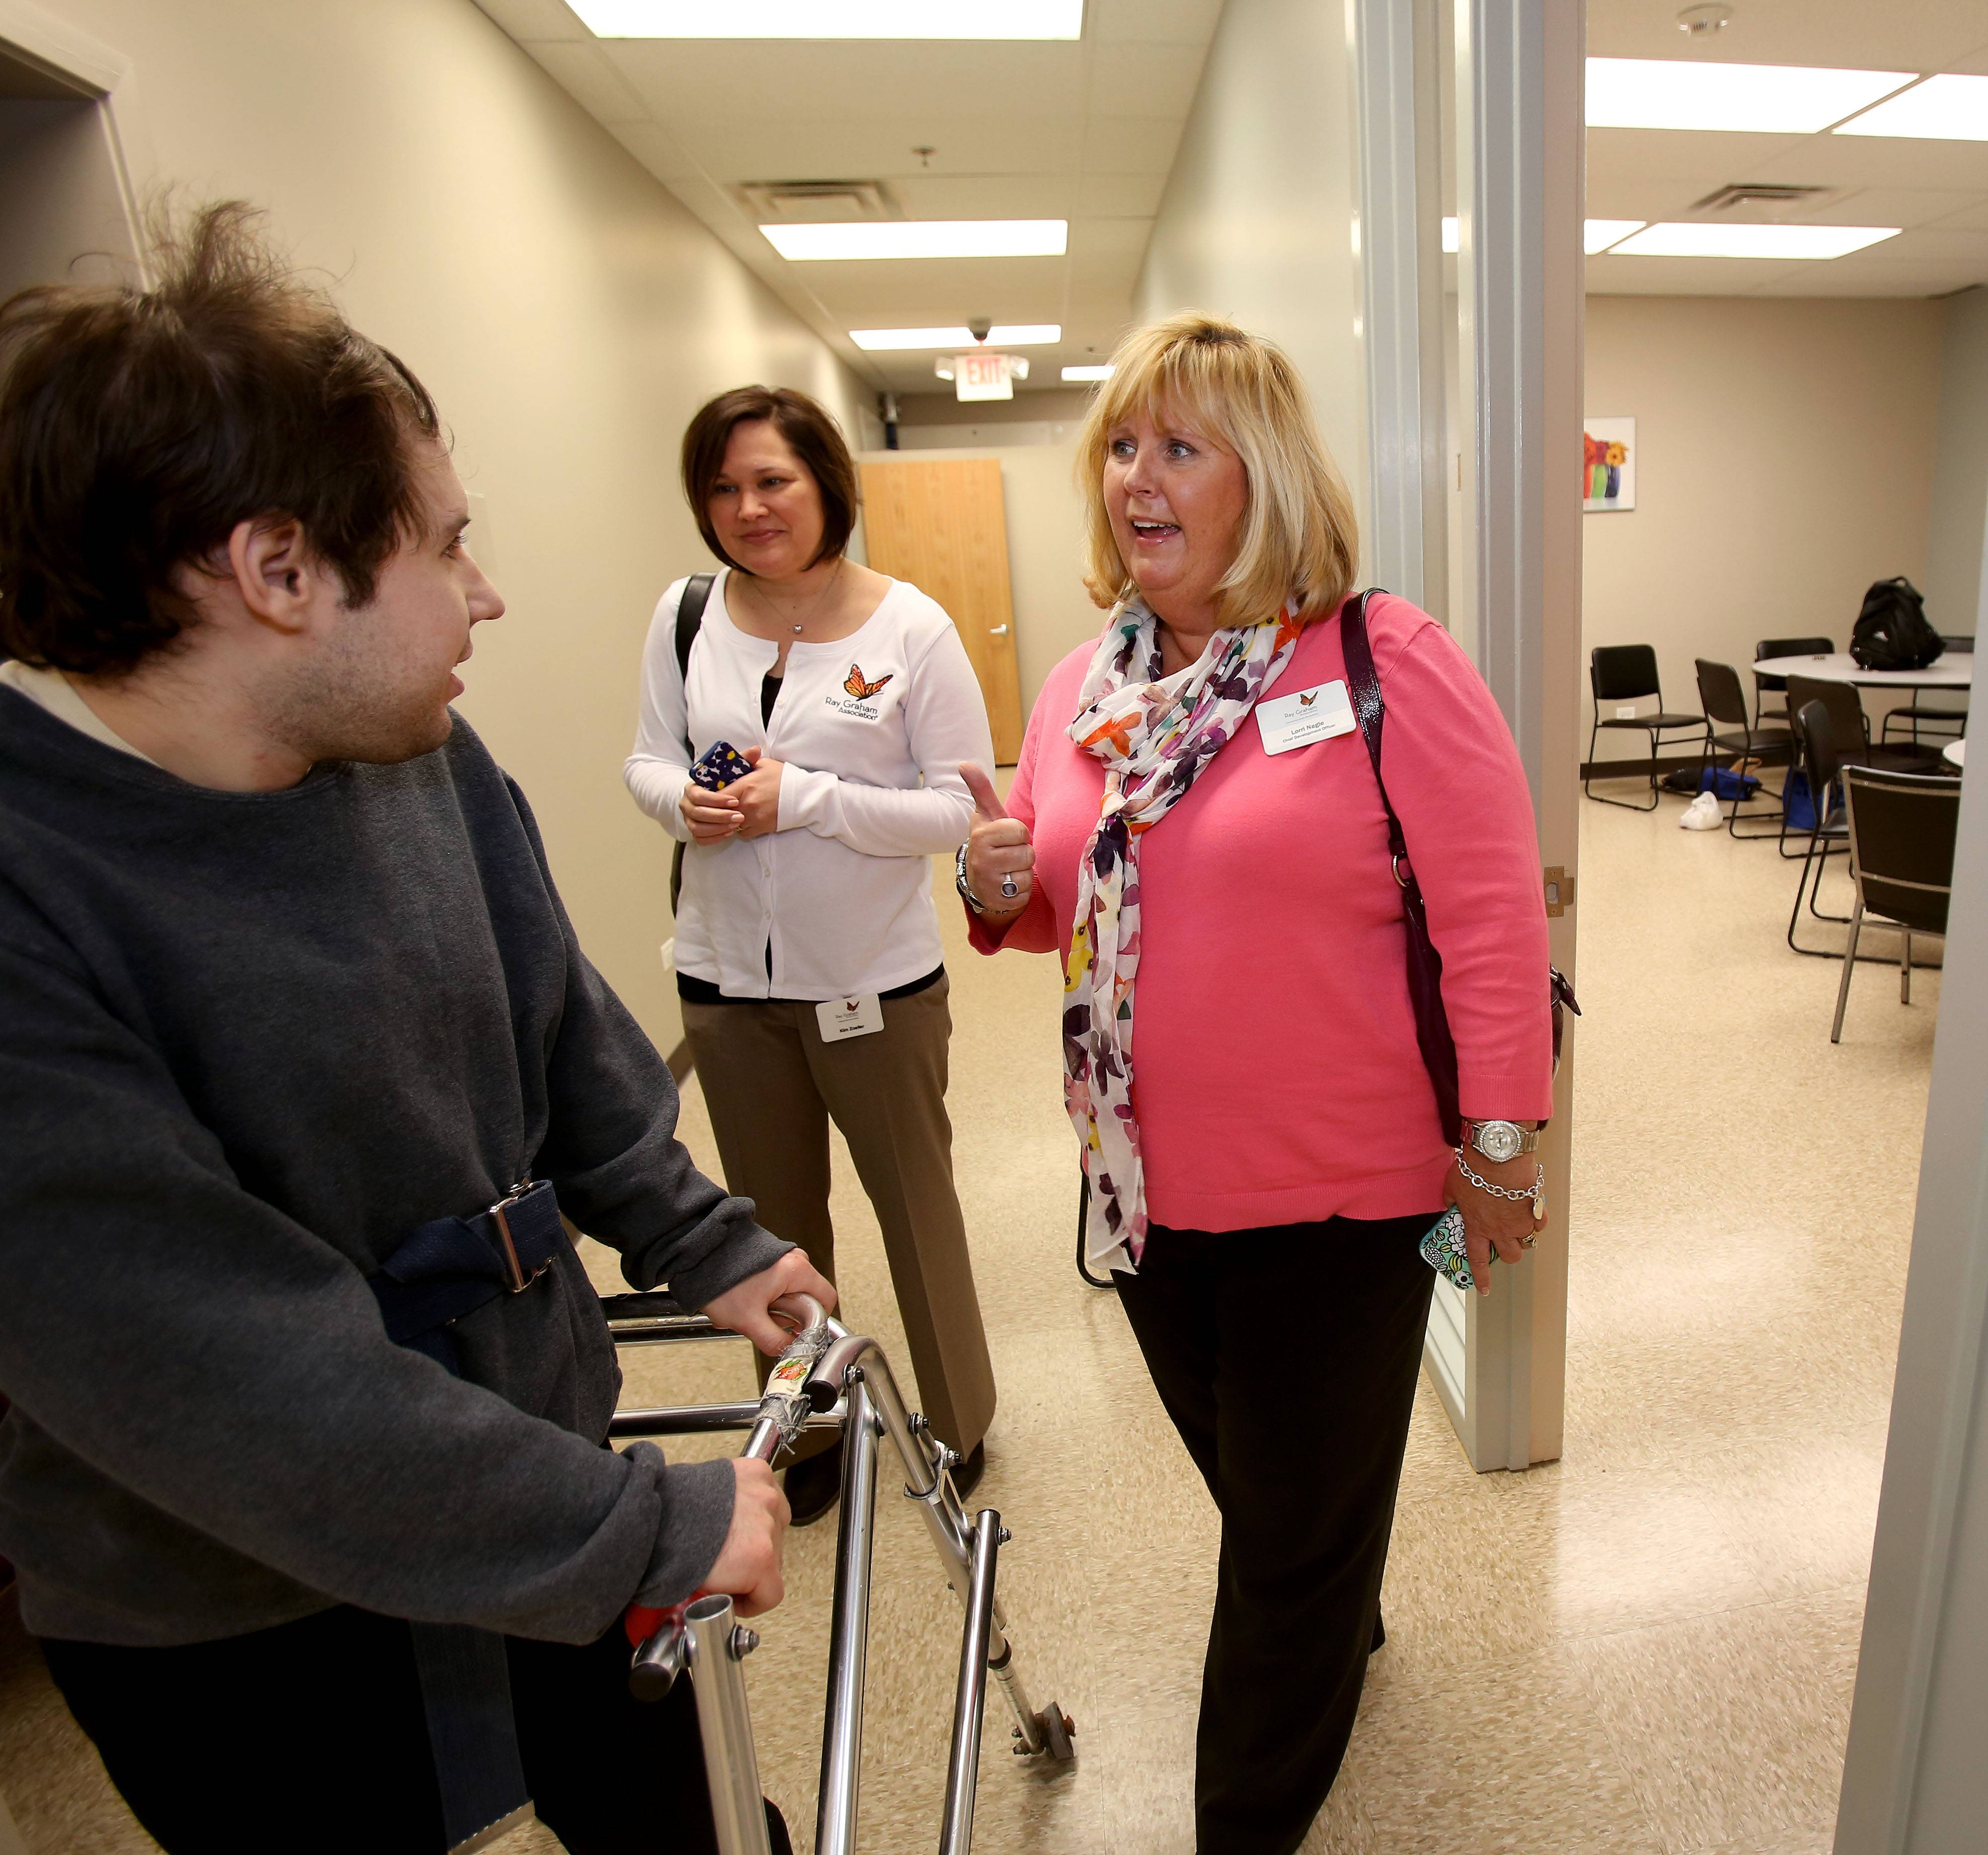 Richard Changlon, left, of Bensenville, chats with Ray Graham Association President and Chief Executive Officer Kim Zoeller and Chief Development Officer Lori Nagle during the grand reopening of the association's community learning center Friday in Lombard.